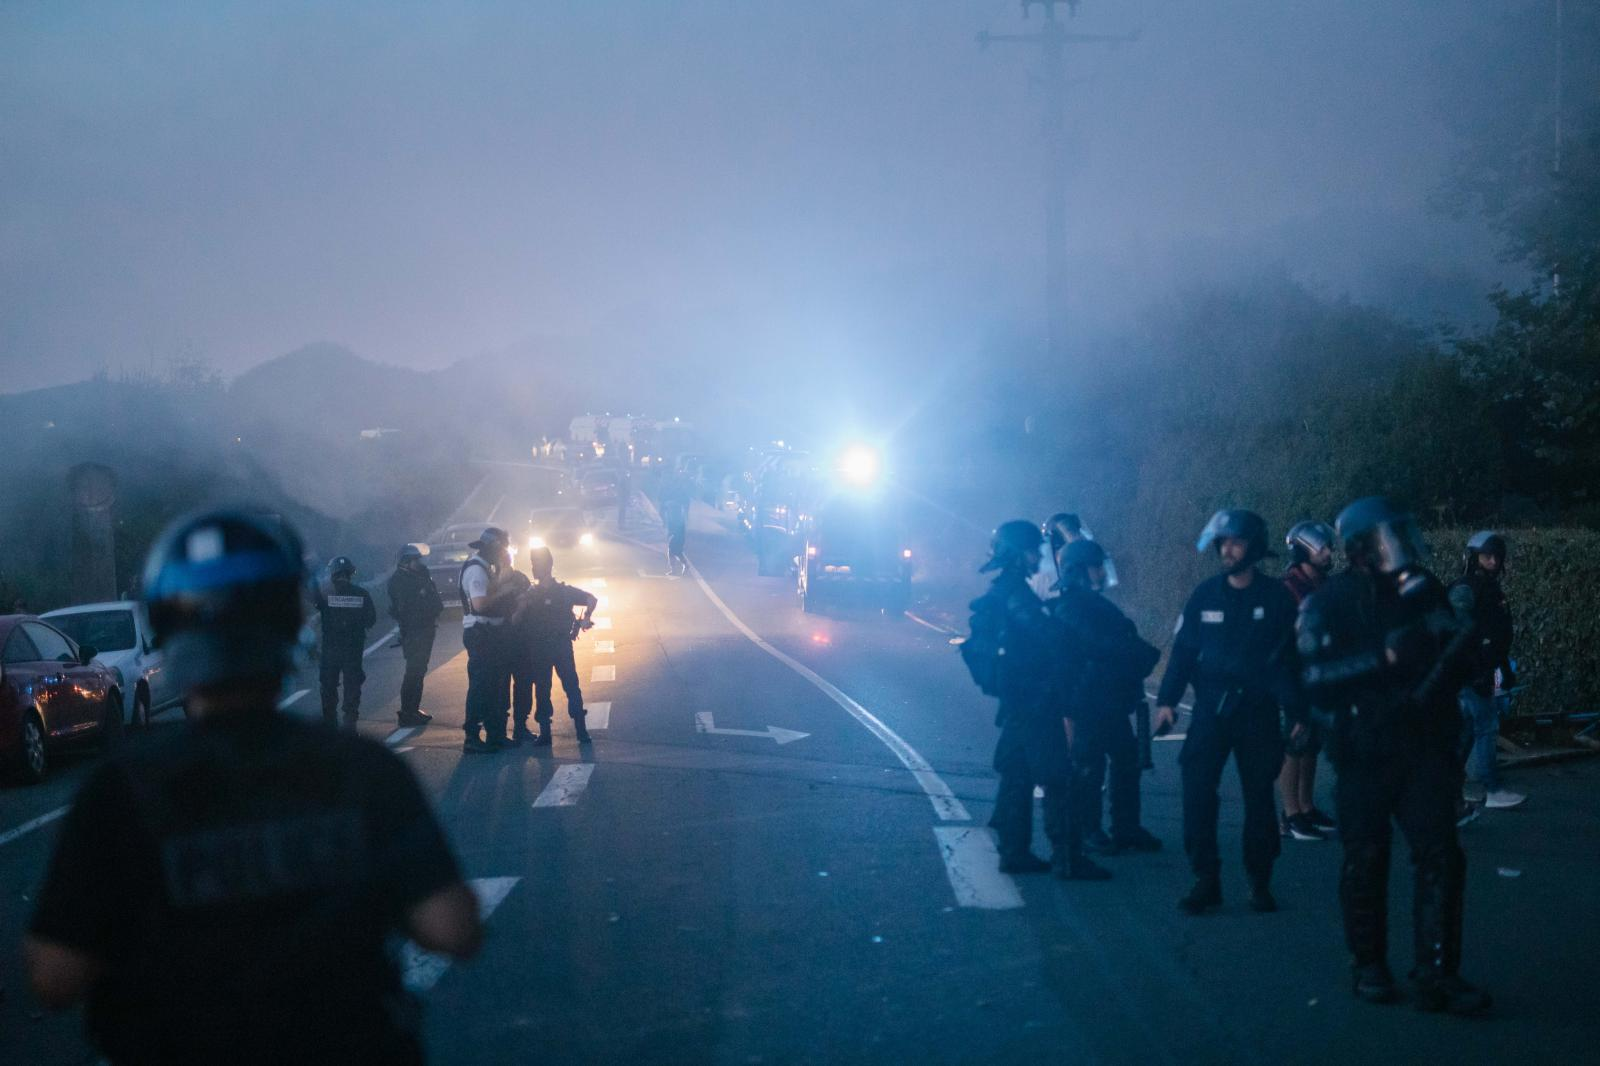 2019-08-23 - Police forces stand on road in front of protest camp, following clashes.